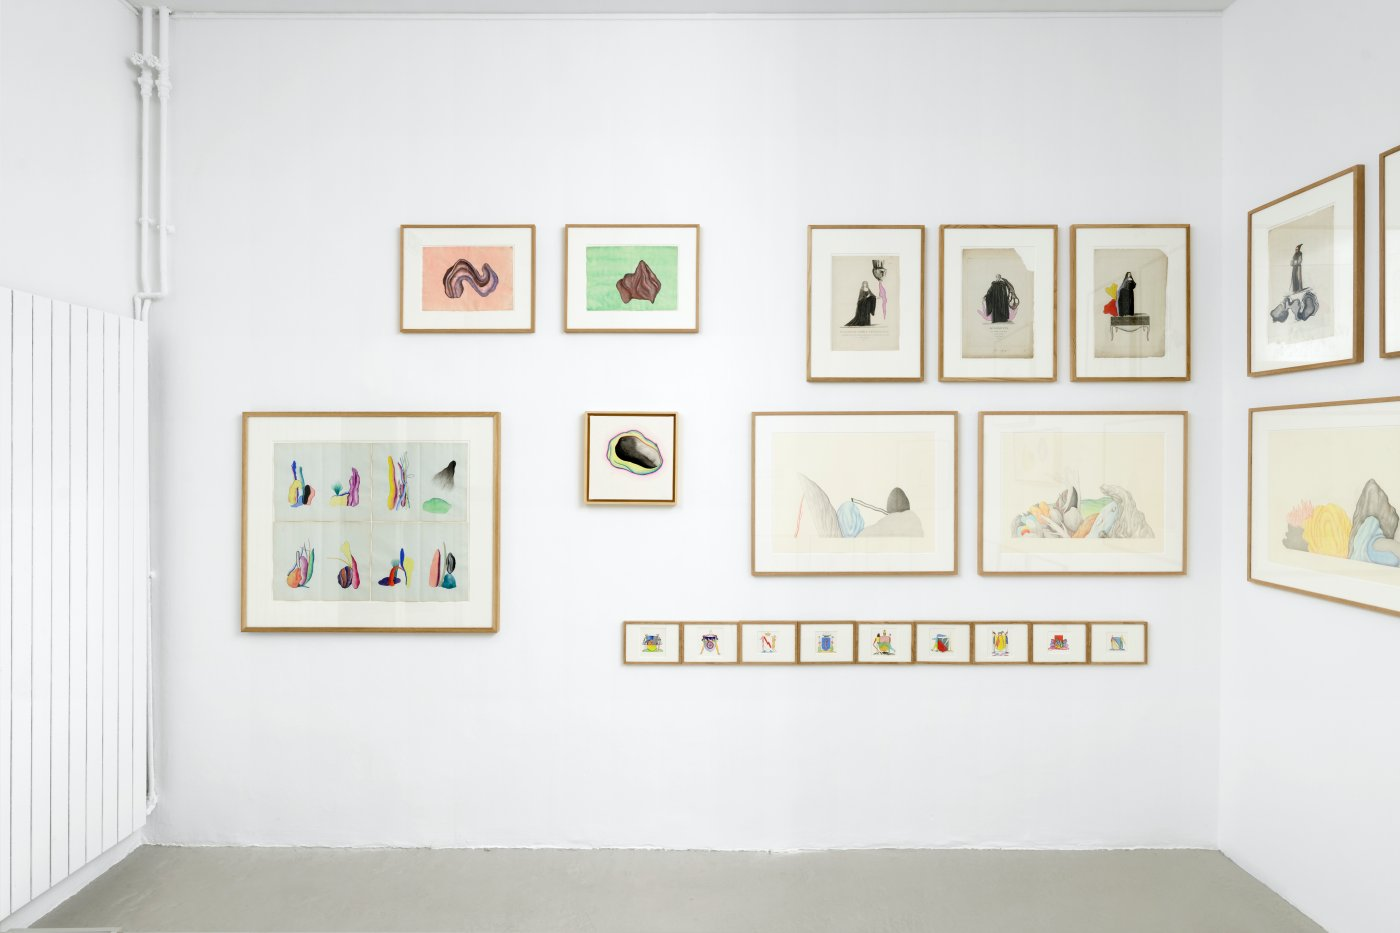 Semiose Project Room Guillaume Dege 2